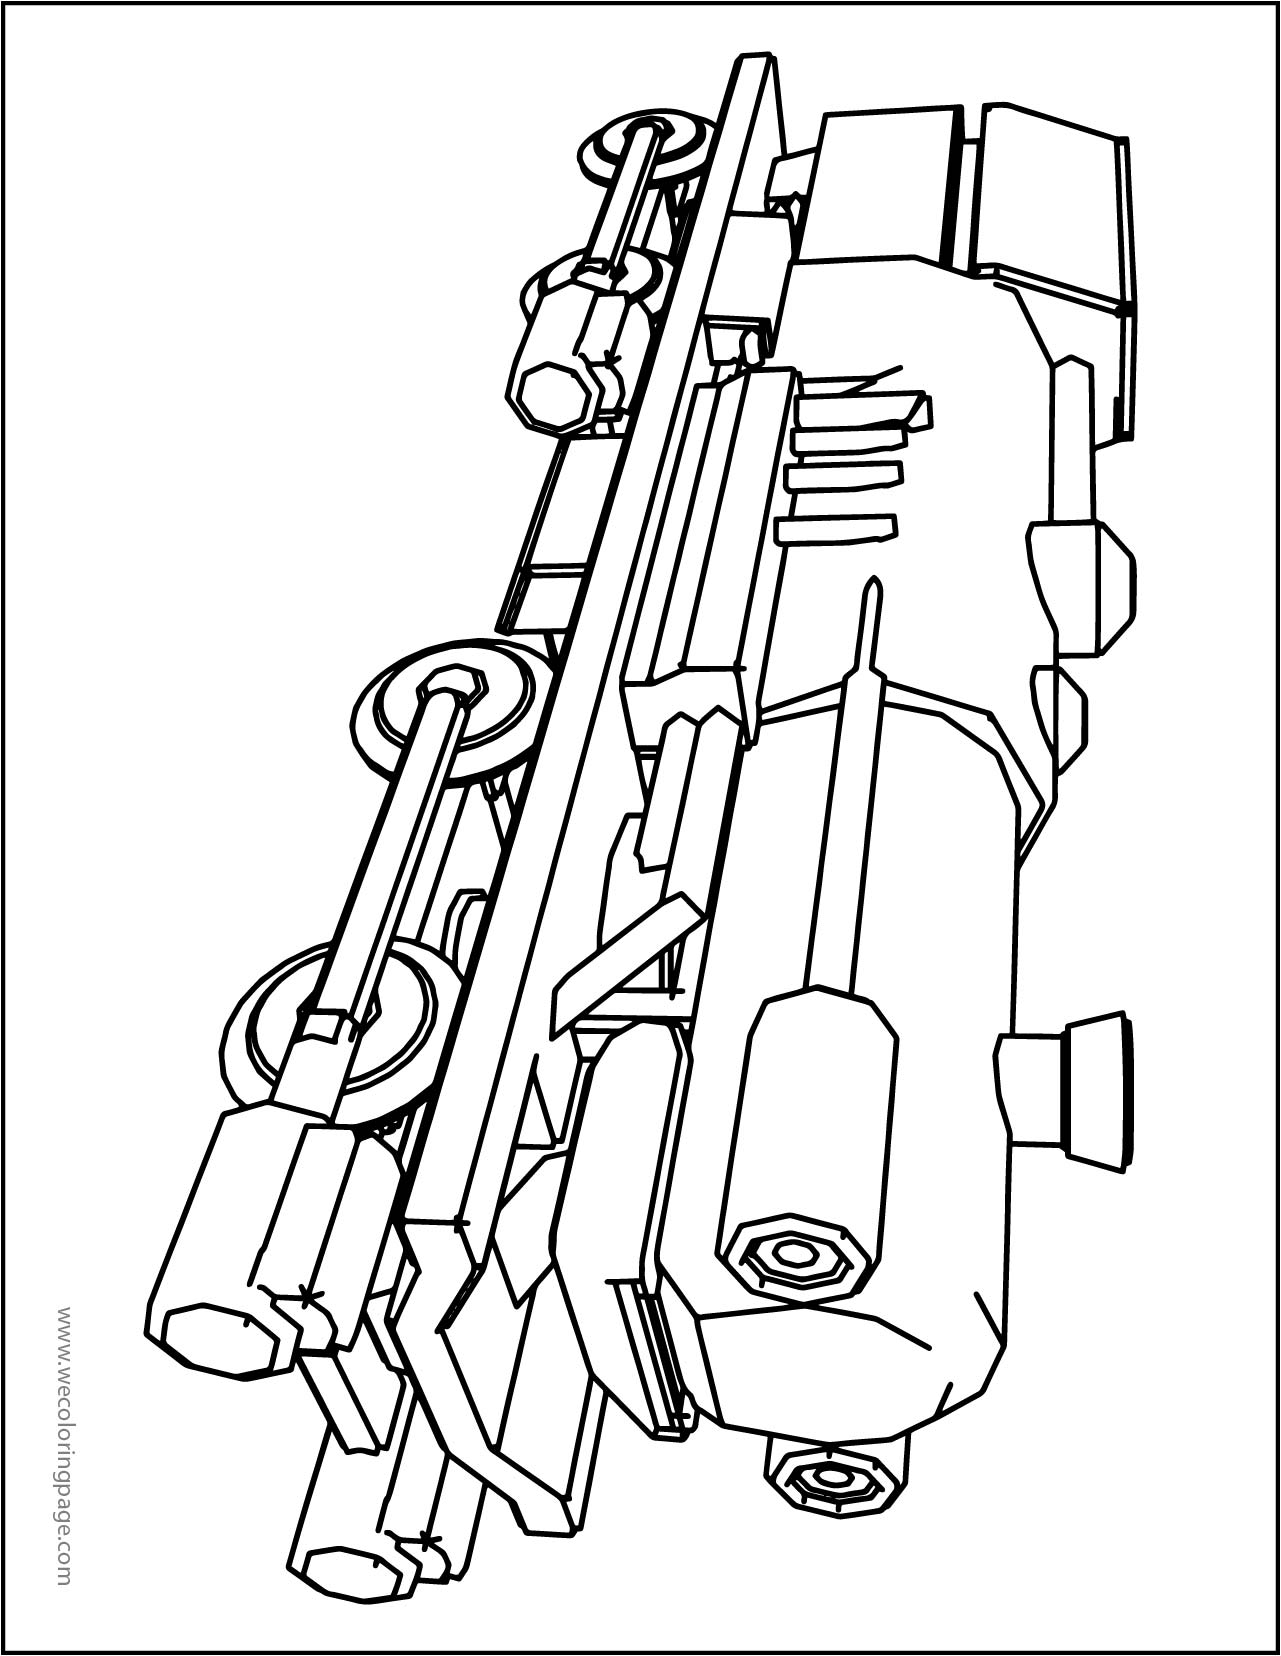 Chuggington Landslide Coloring Page